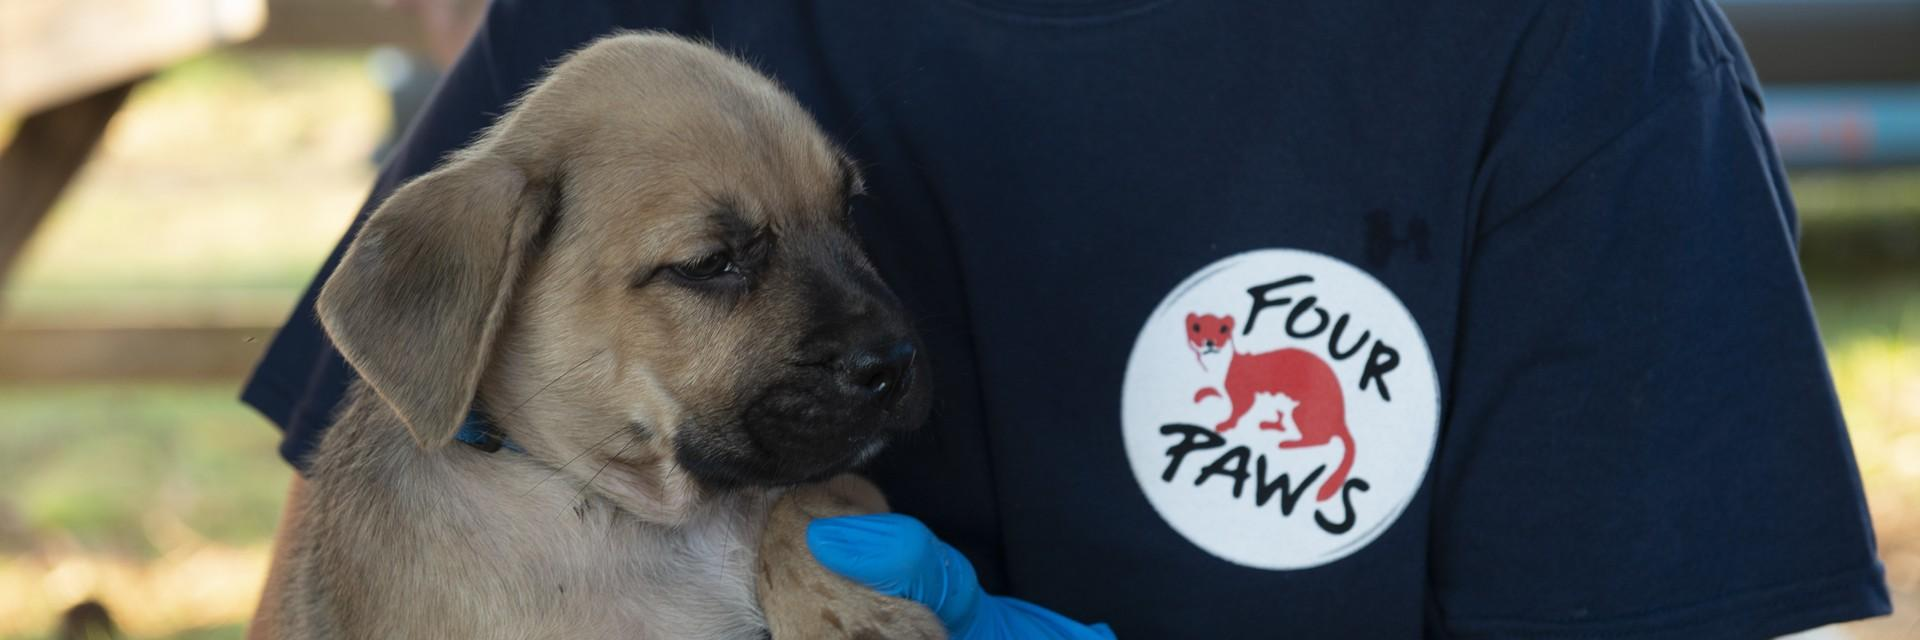 FOUR PAWS team in action